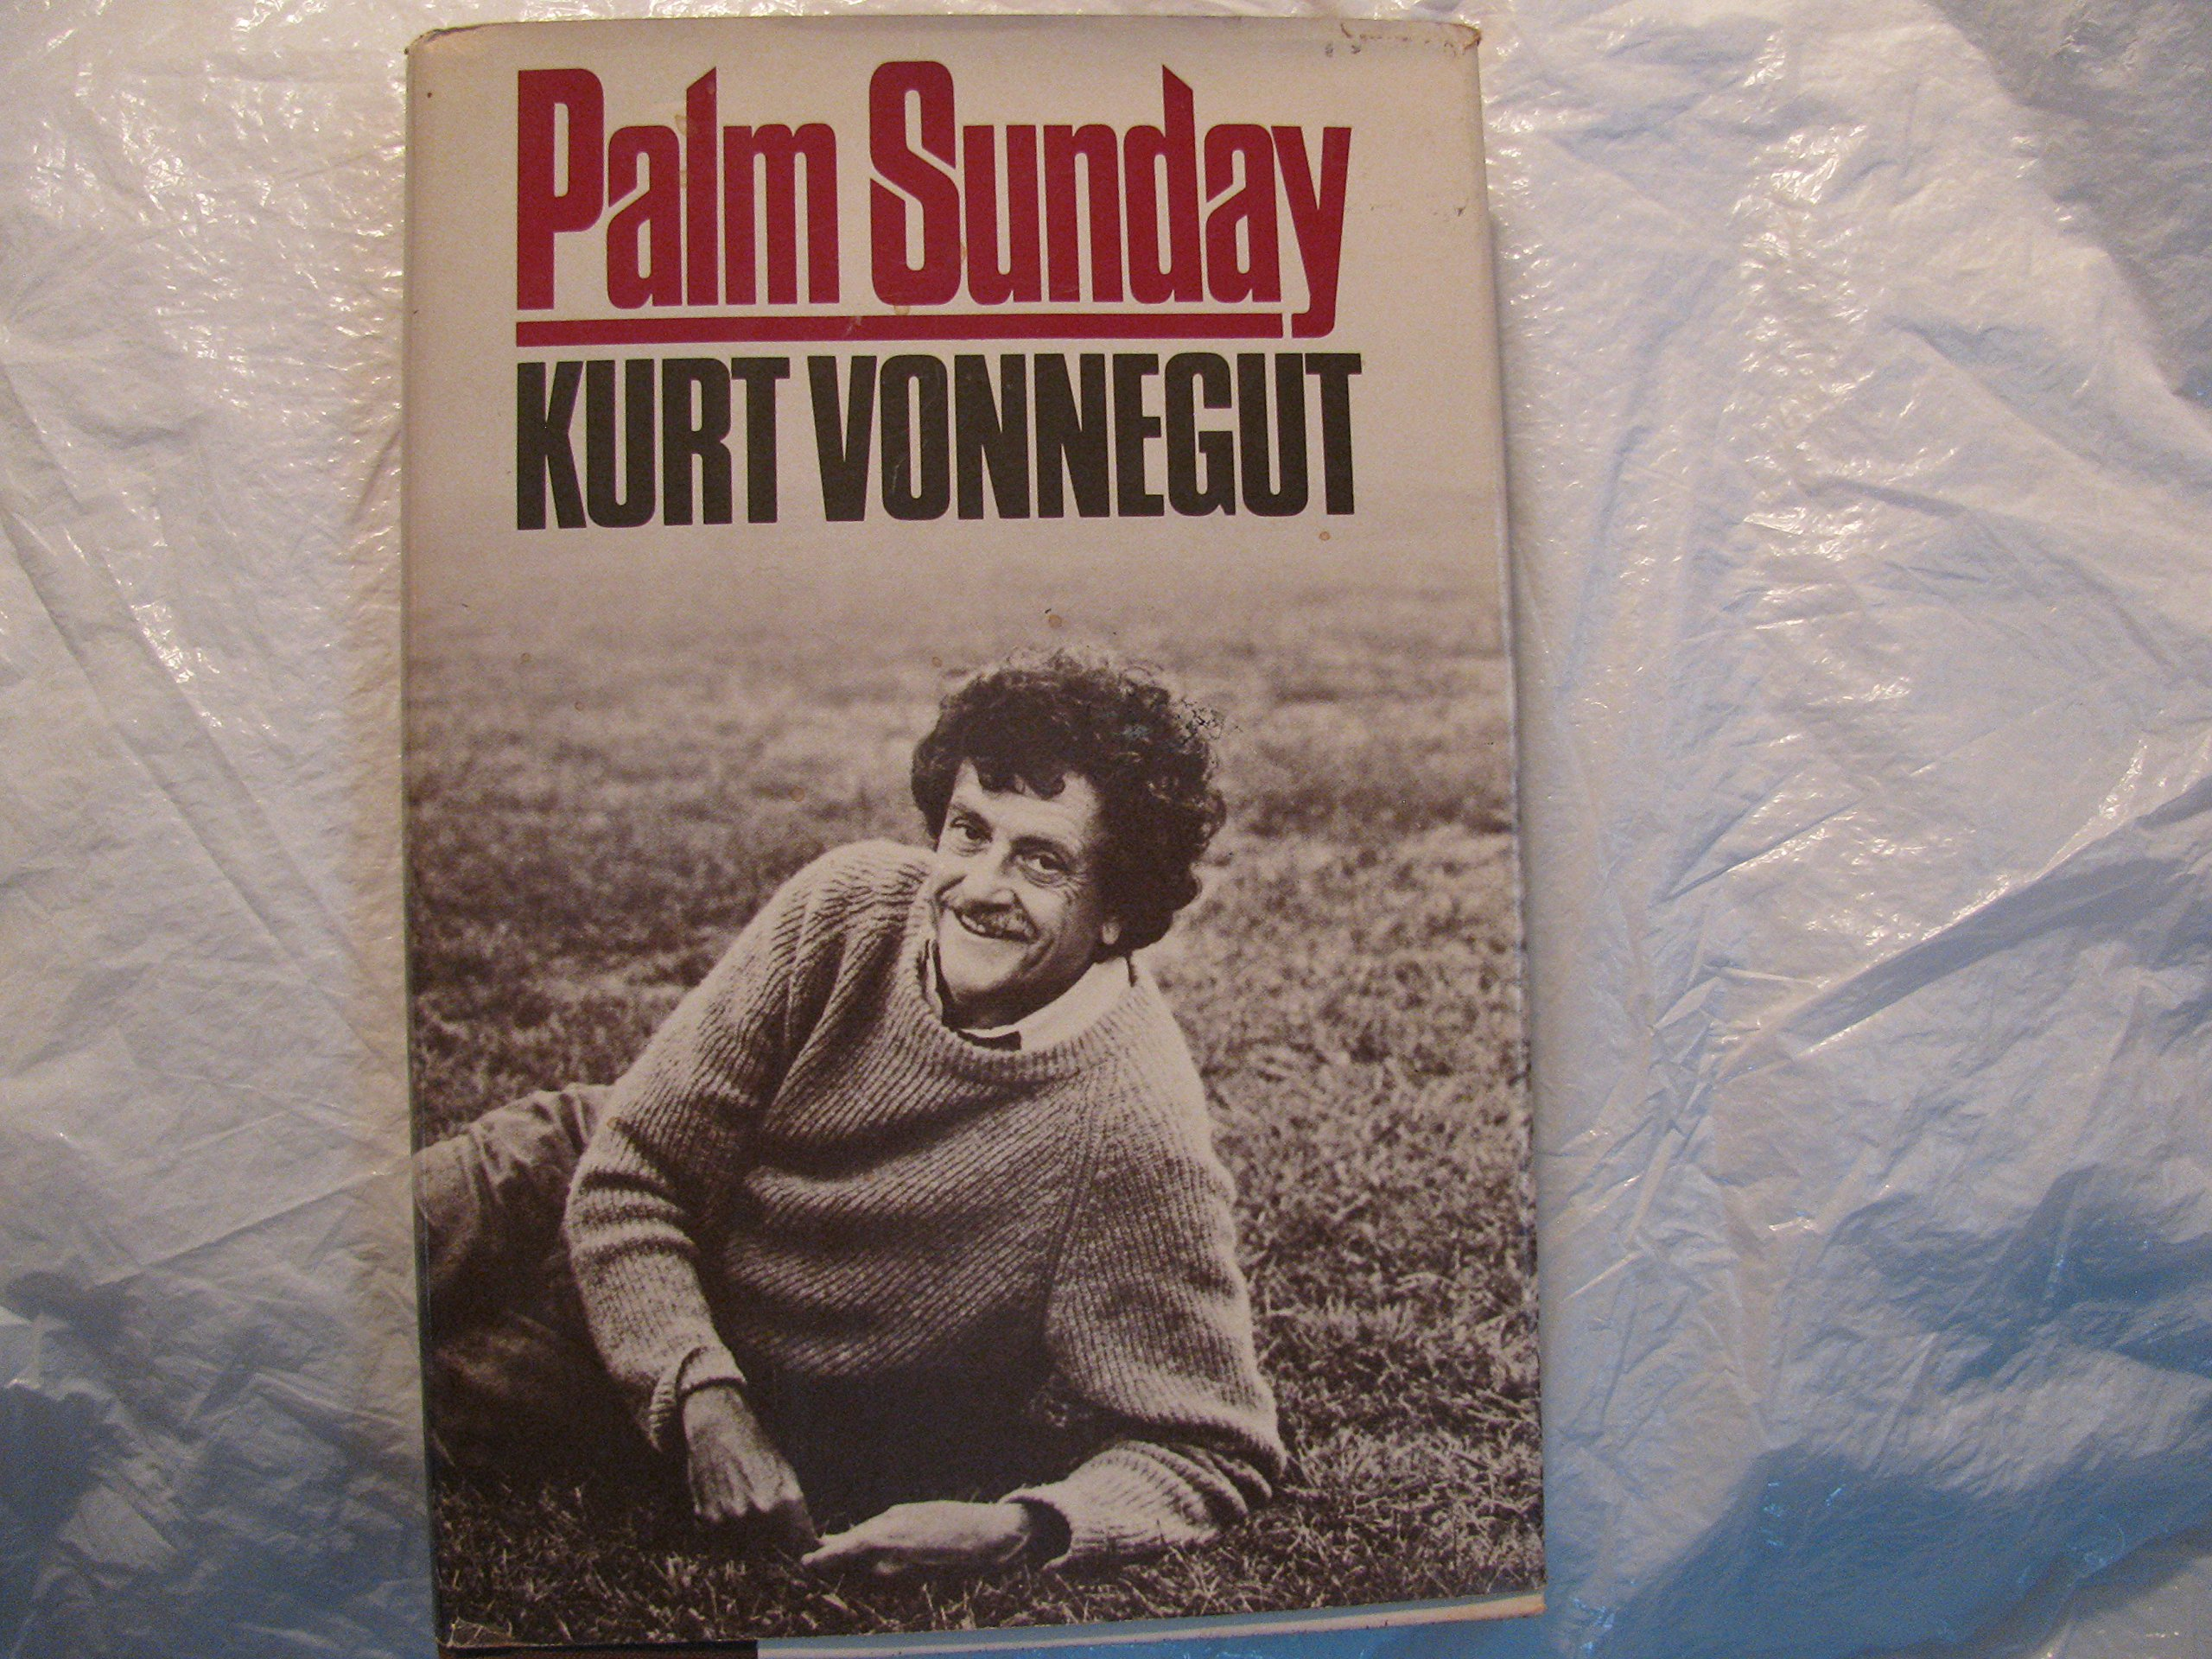 palm sunday an autobiographical 1st edition kurt vonnegut palm sunday an autobiographical 1st edition kurt vonnegut 9781112779046 com books